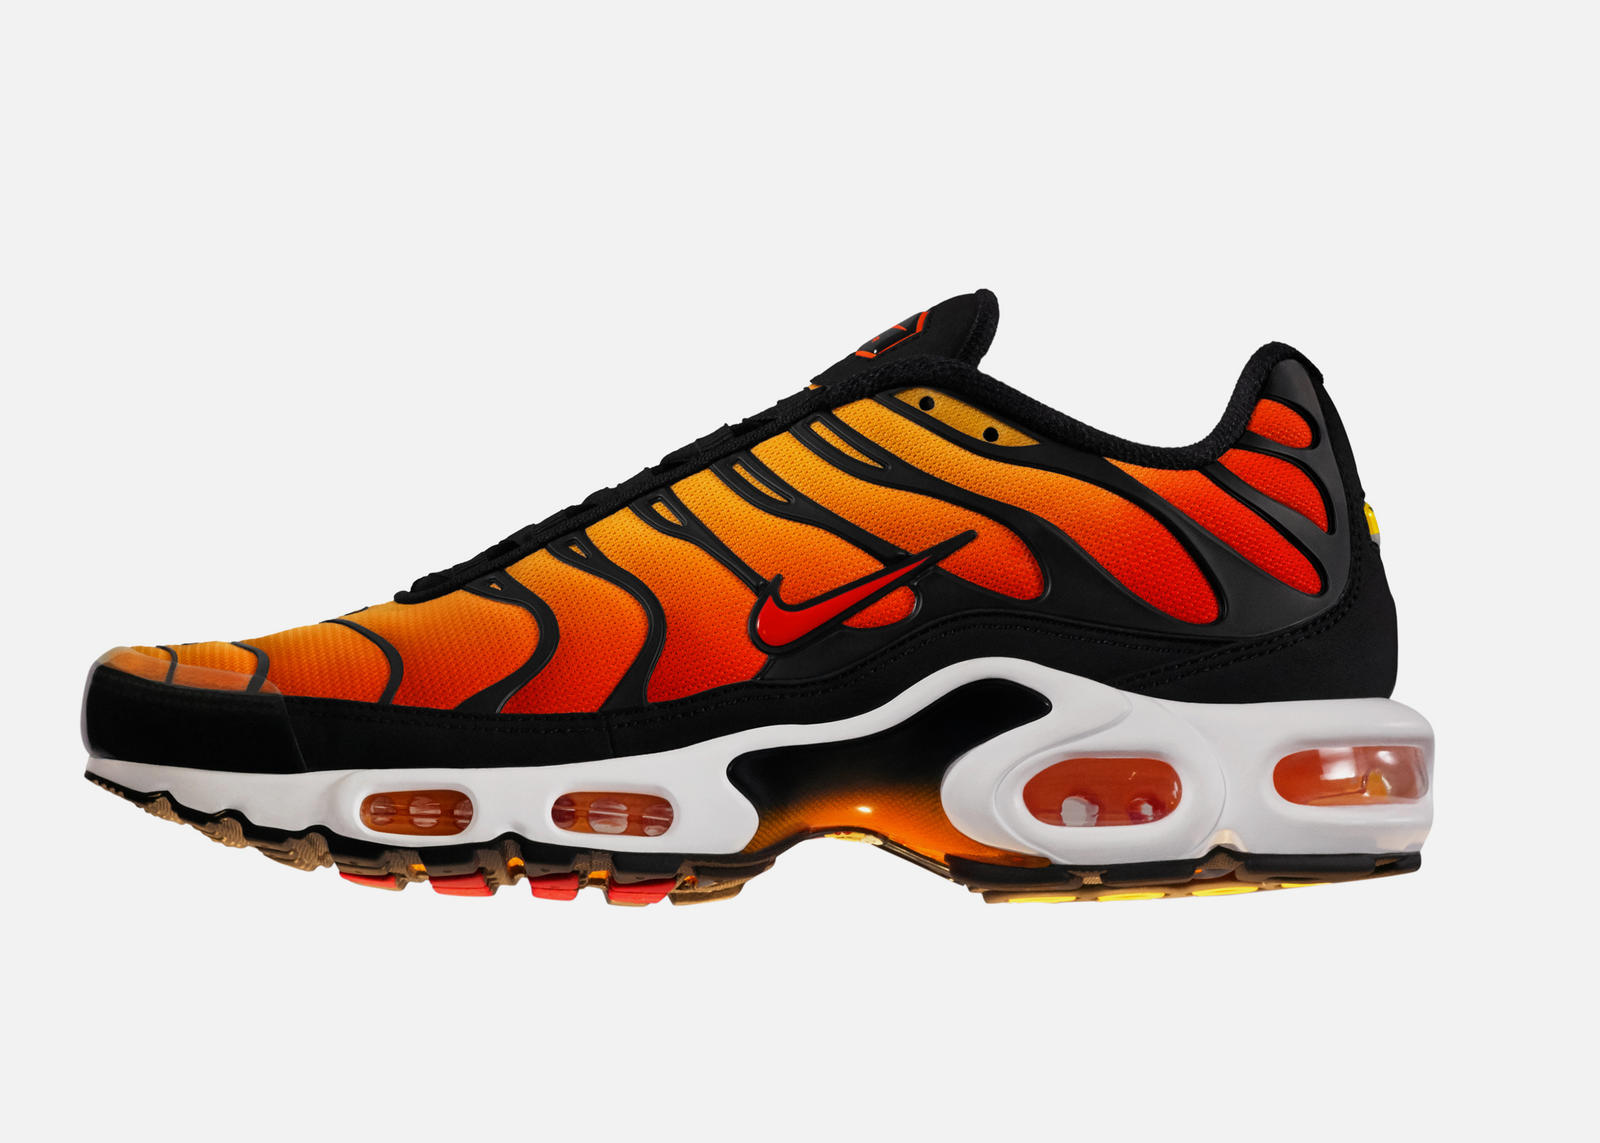 outlet store 15f10 c1150 The Untold Story of the Nike Air Max Plus 19